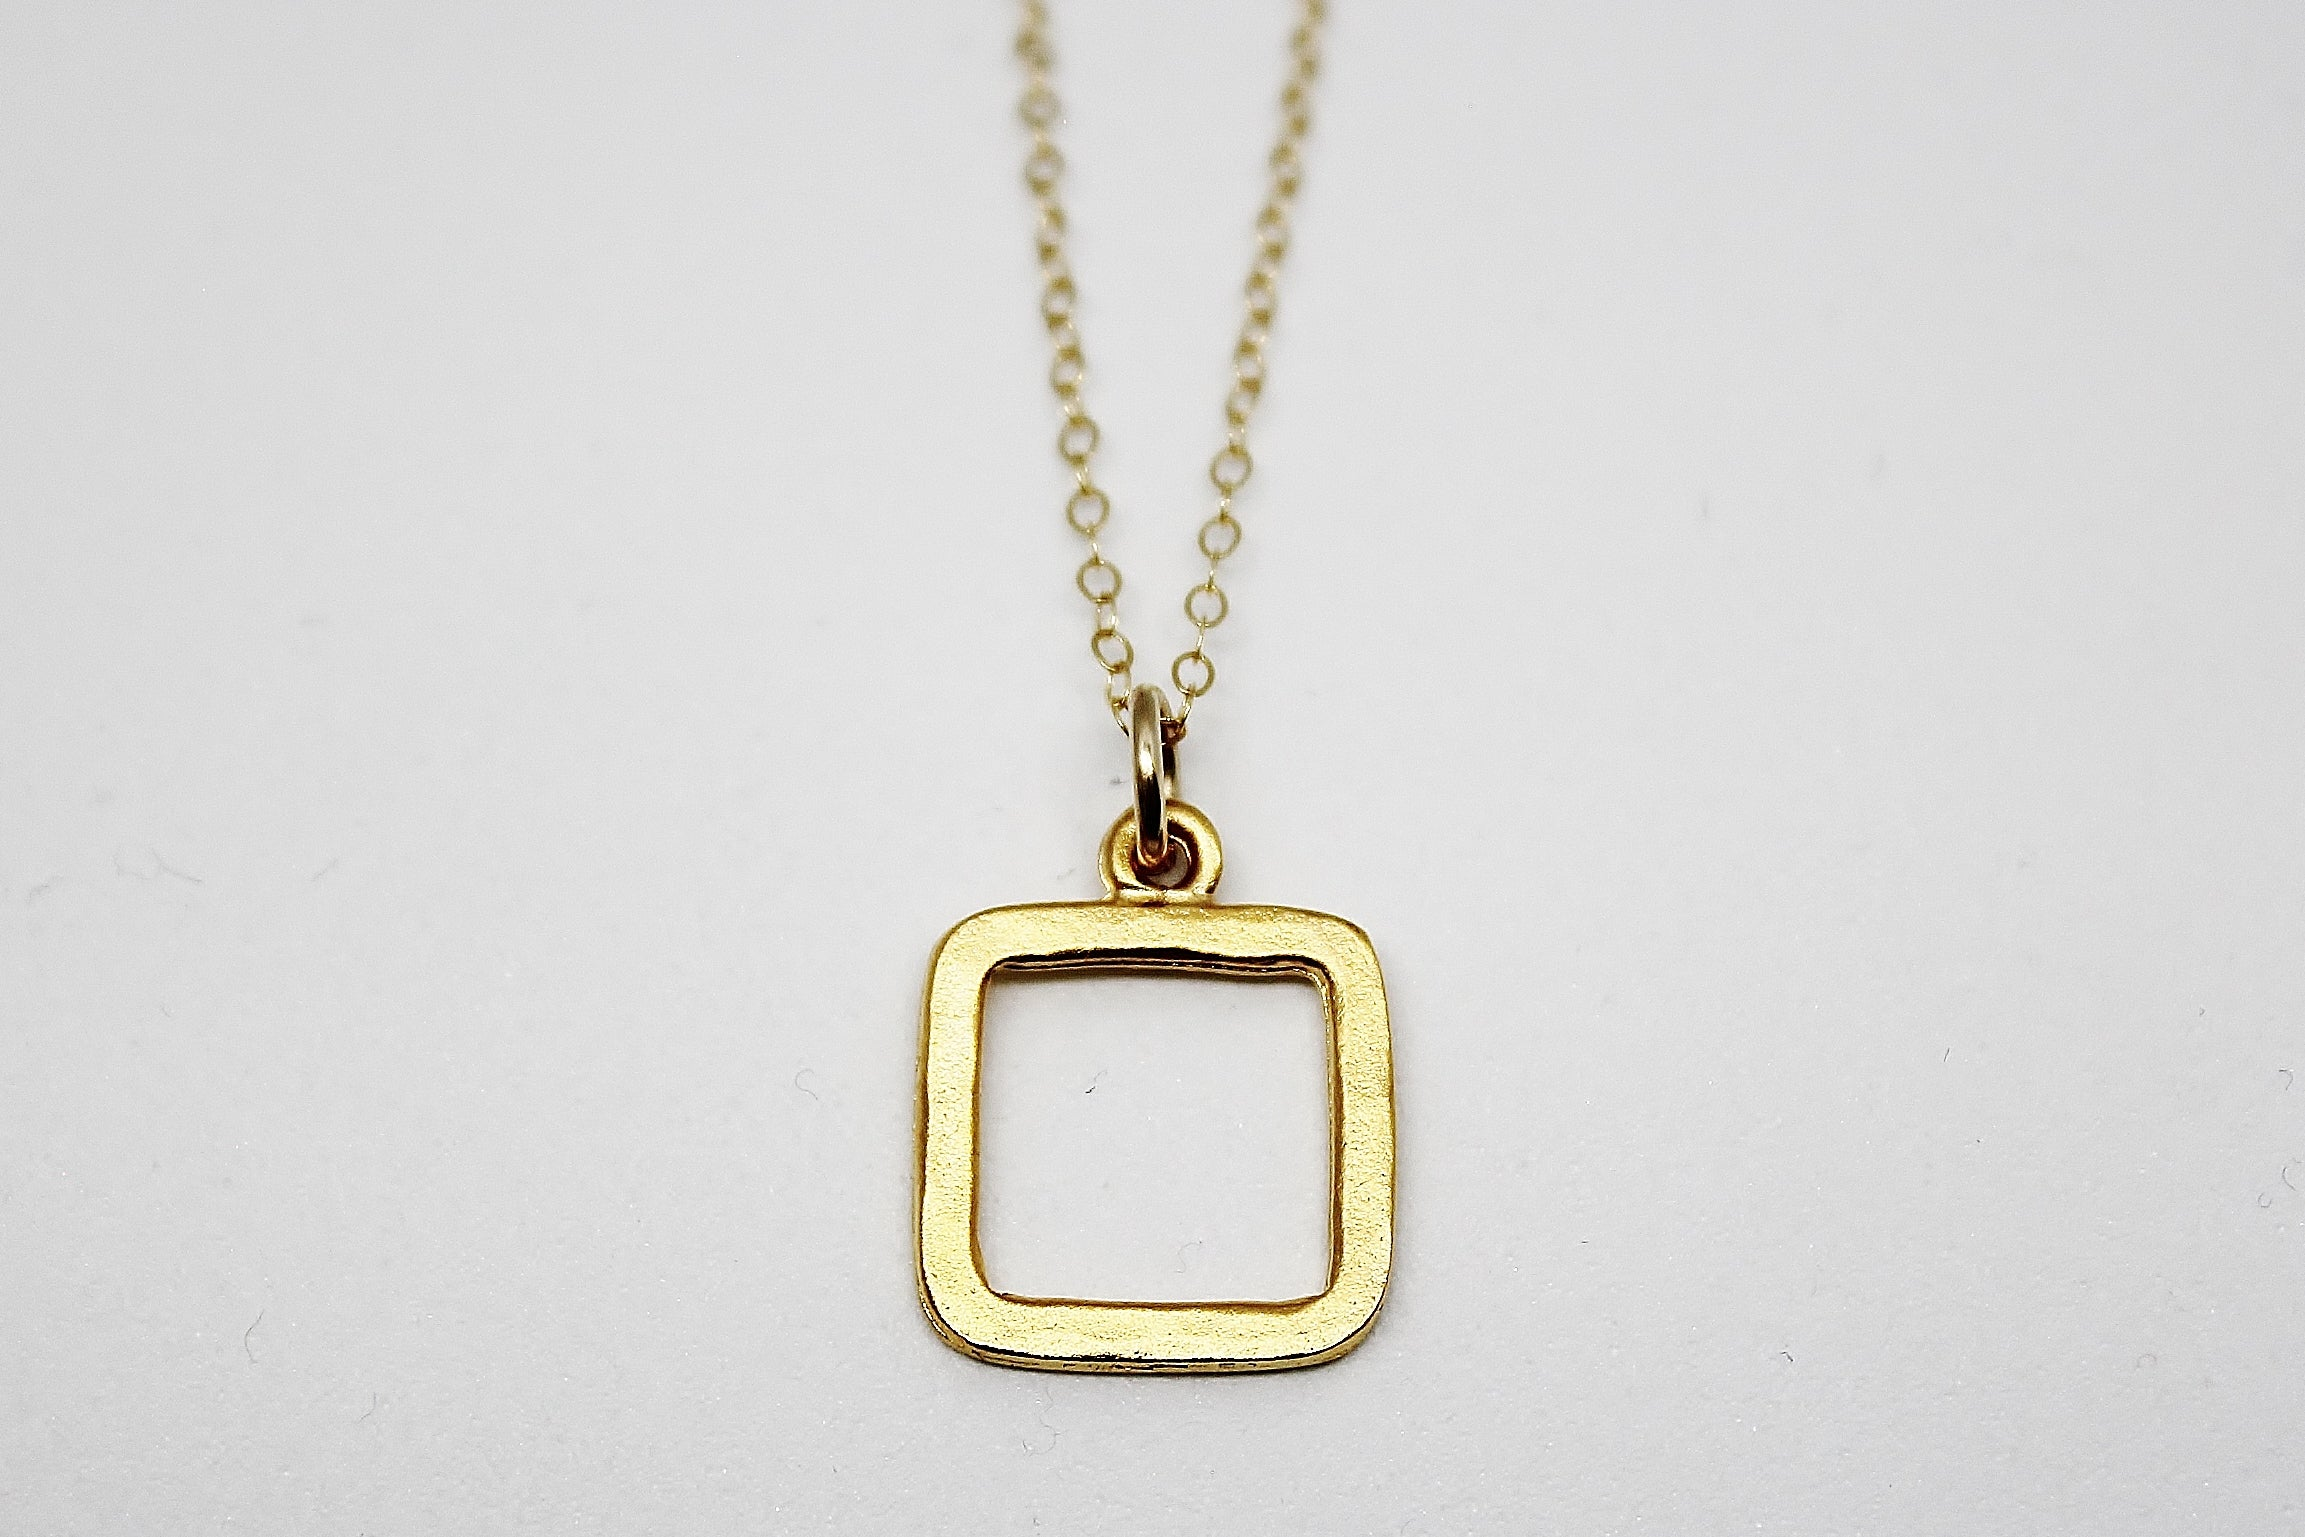 GOLD SMALL SQUARE PENDANT